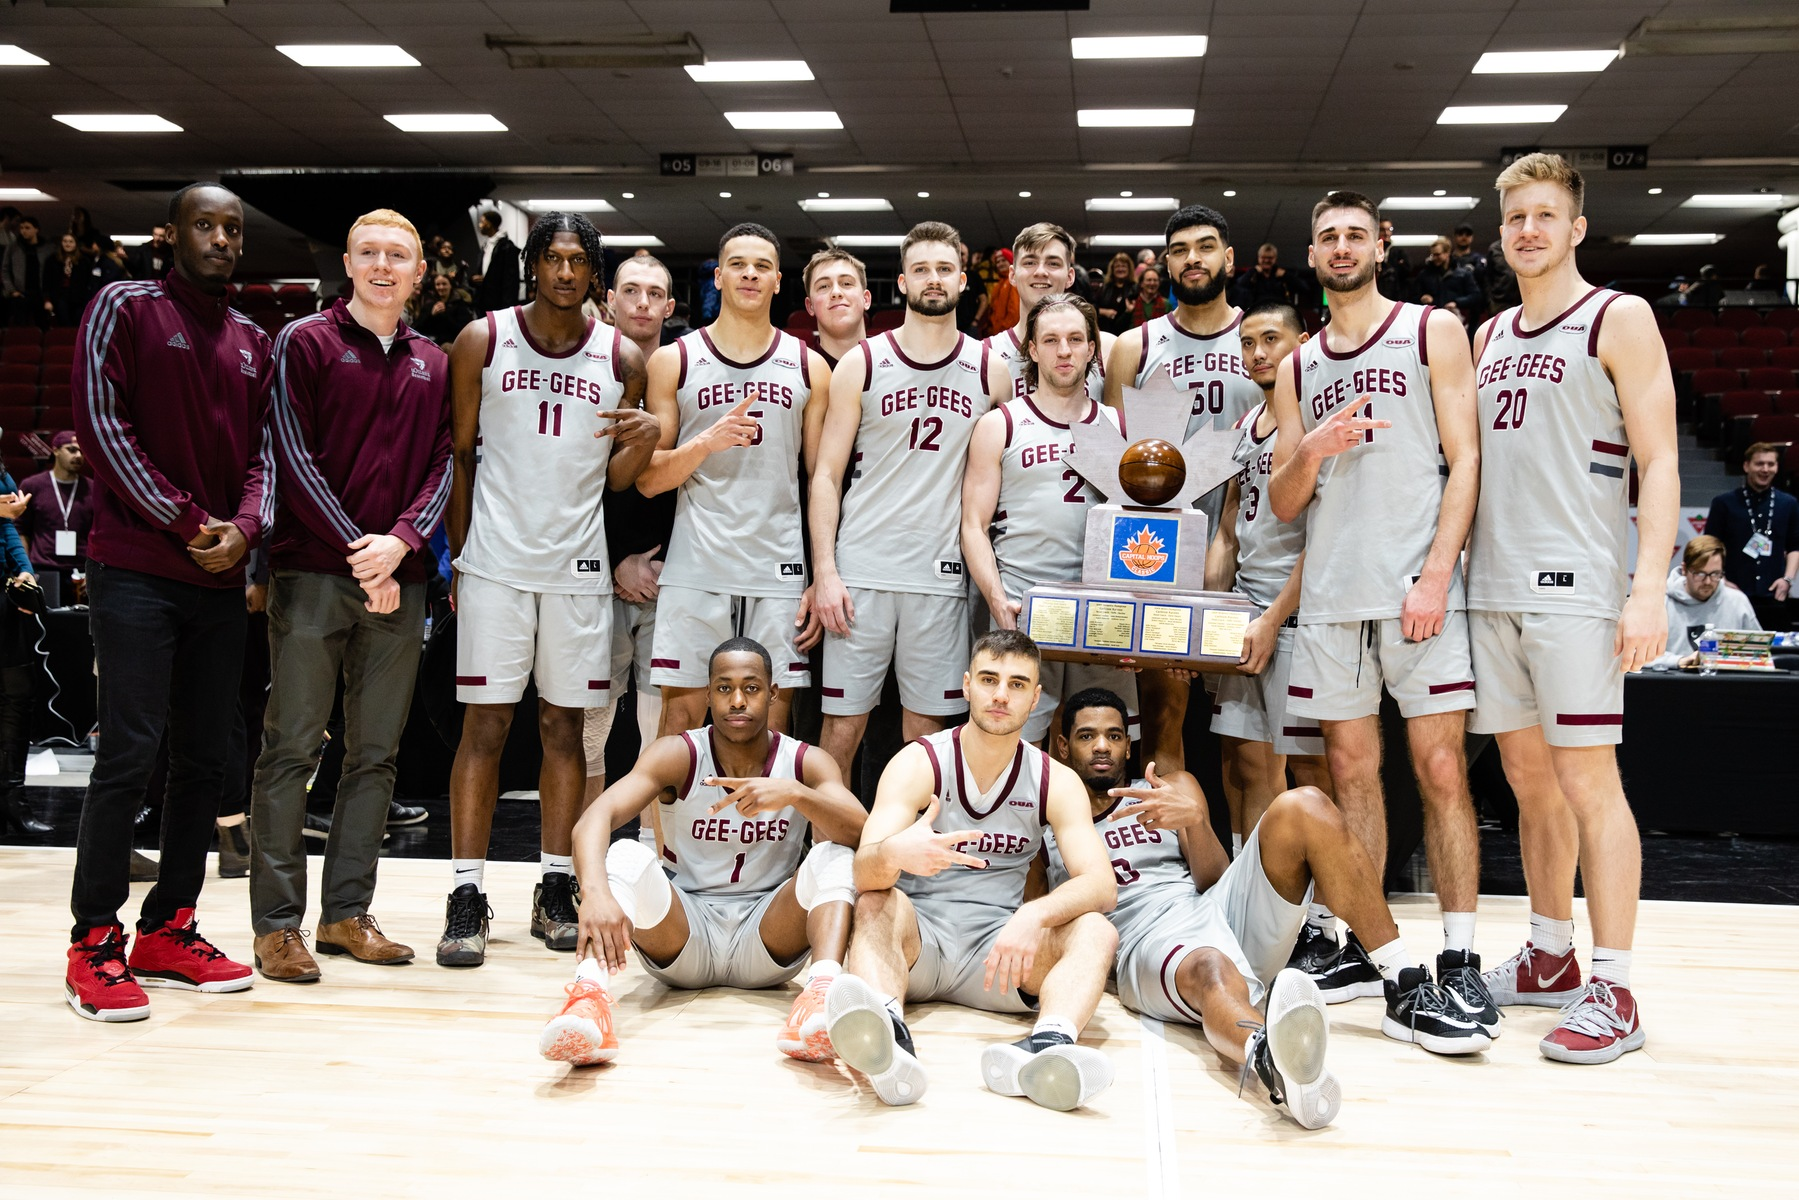 Gee-Gees men's team with the event trophy.